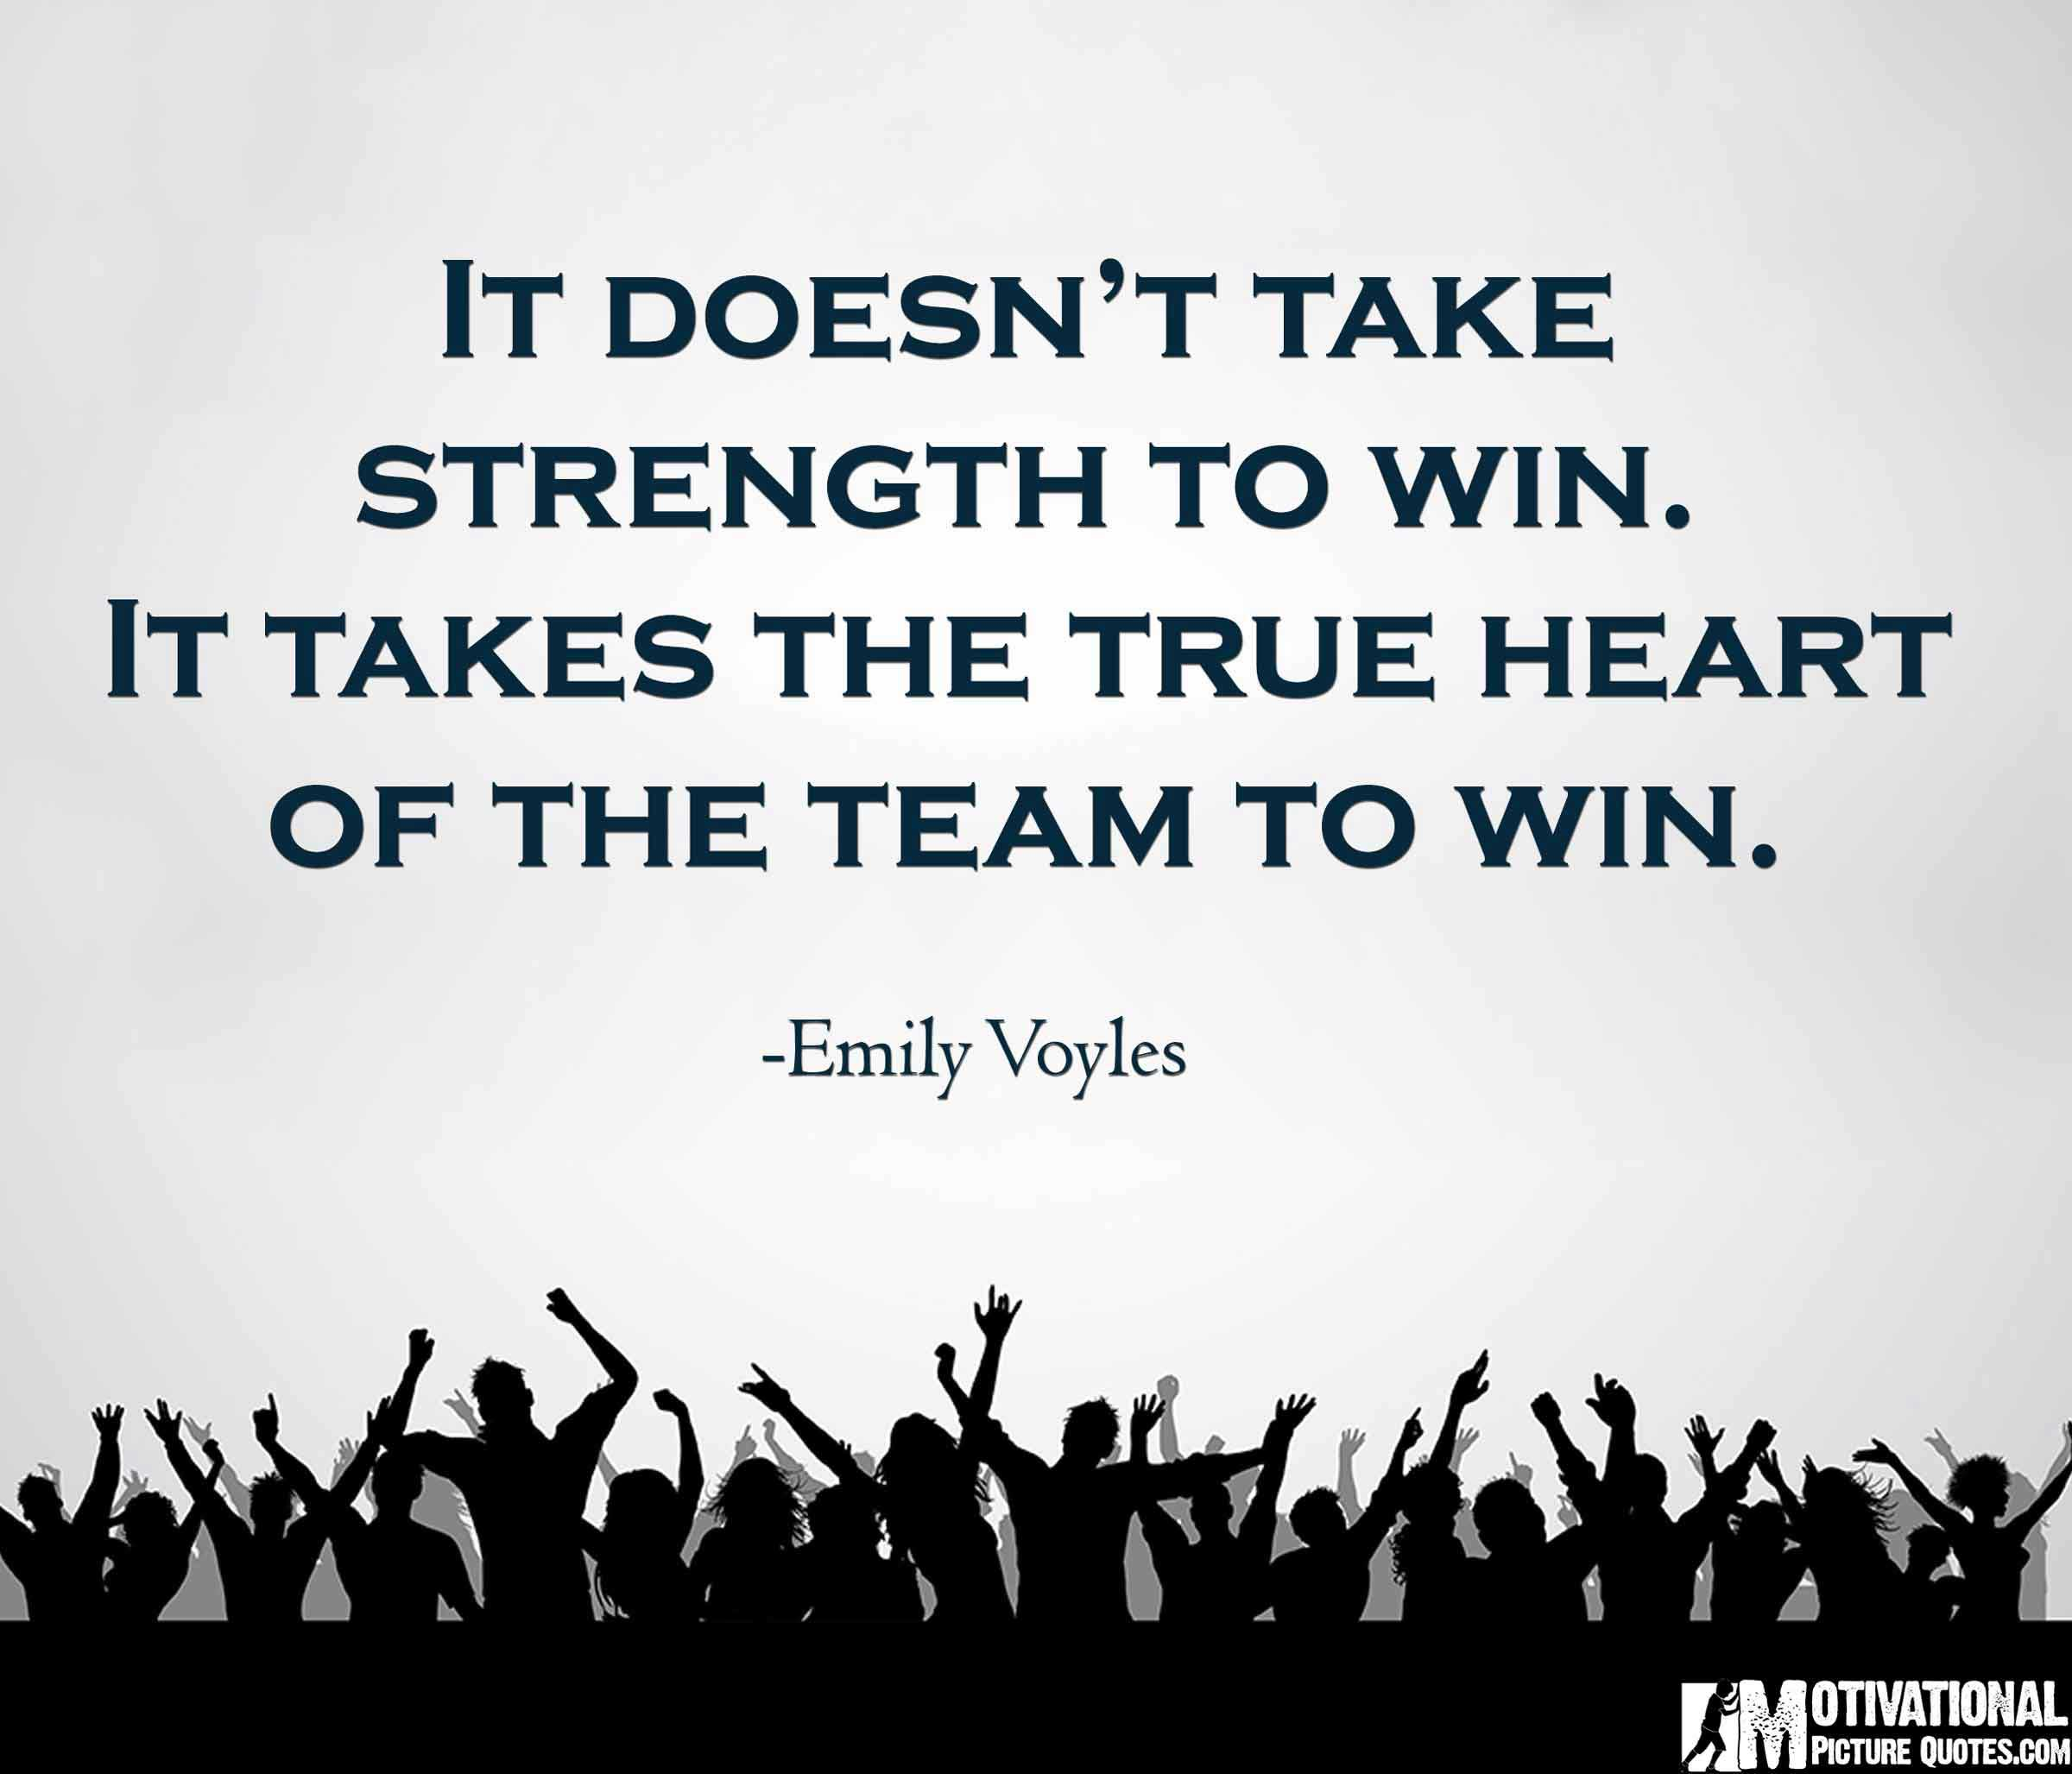 20 Inspirational Team Quotes Images